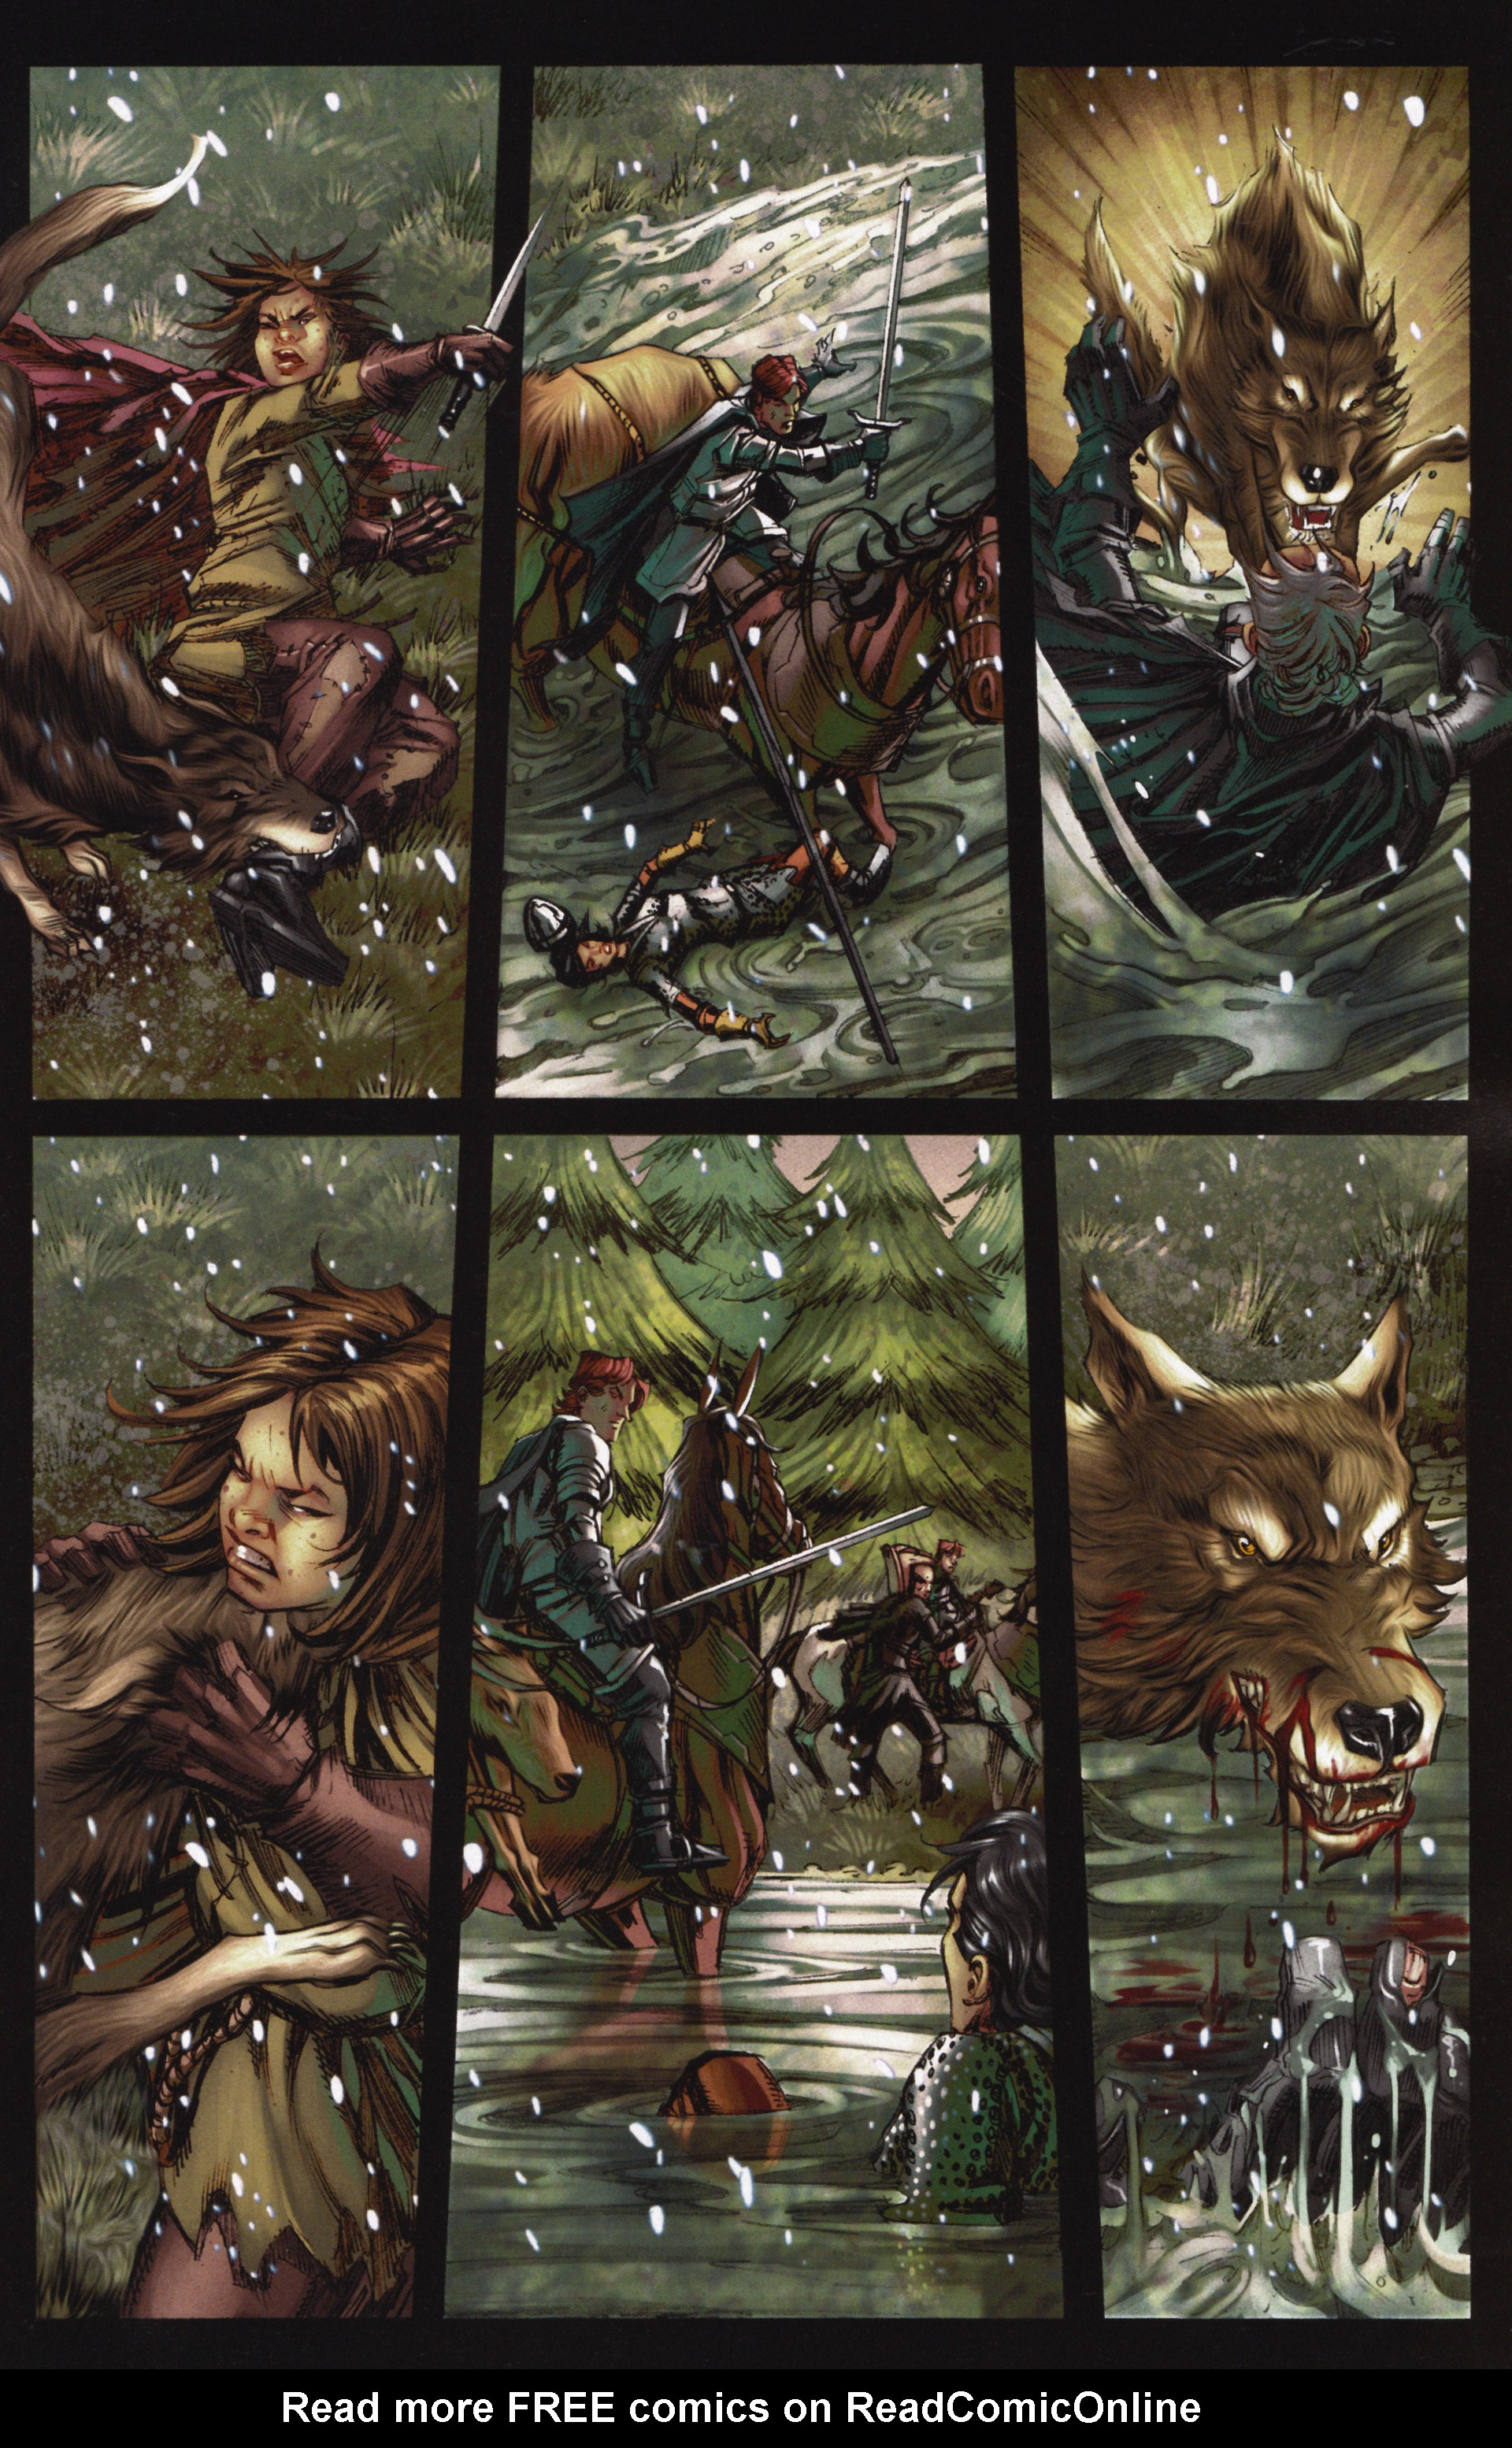 Read online A Game Of Thrones comic -  Issue #12 - 11